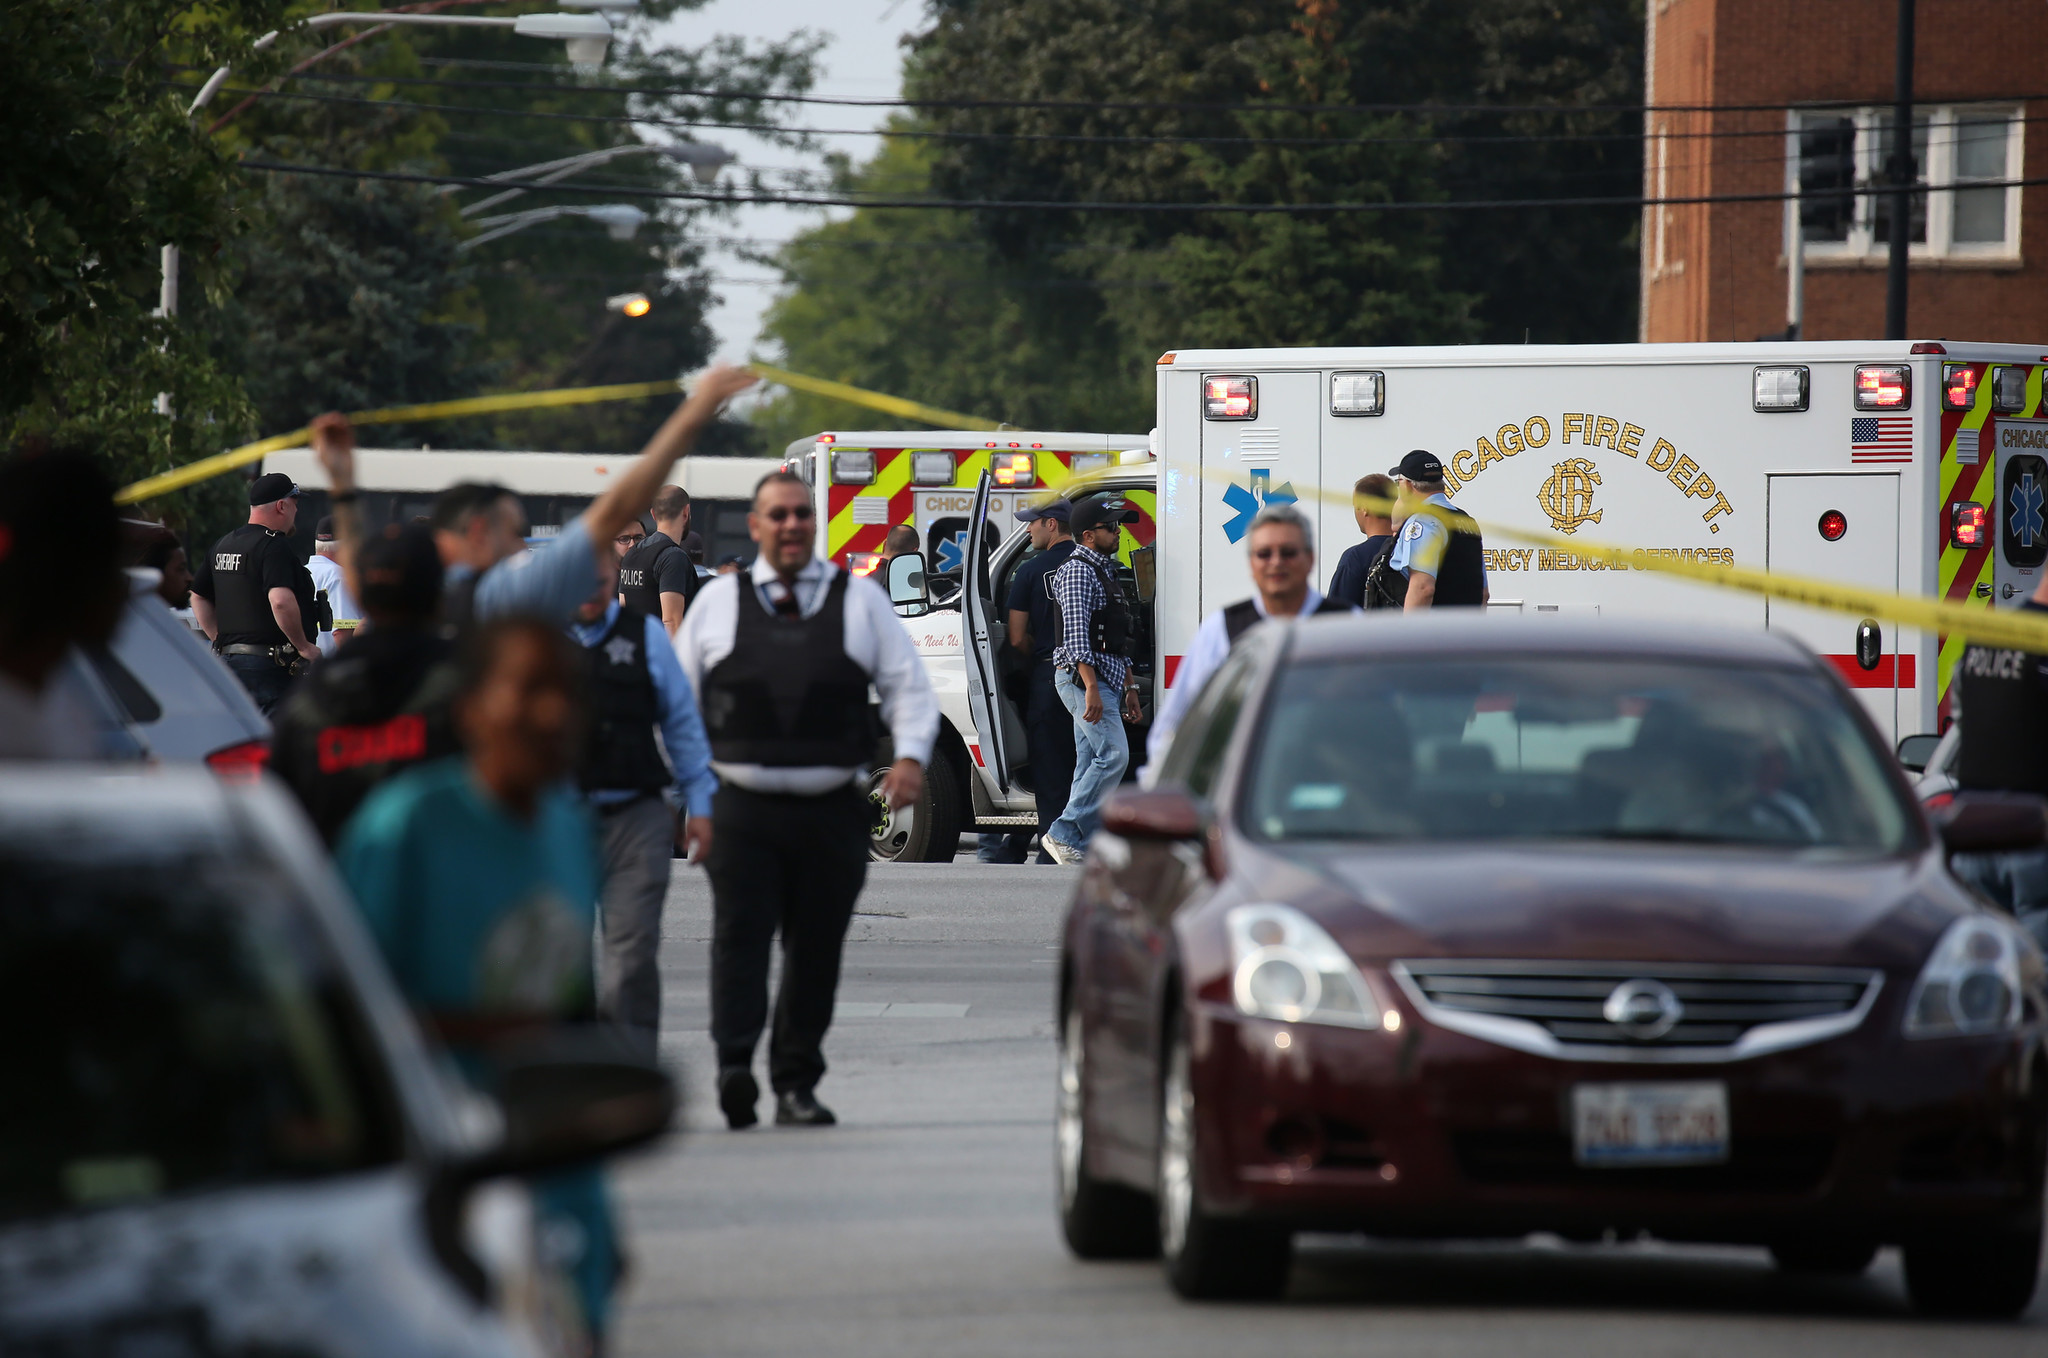 6339 s eberhart ave chicago il - 14 Hours In Chicago Girl 13 Wounded 5 Shot In Lawndale Police Fire At Gunman Chicago Tribune